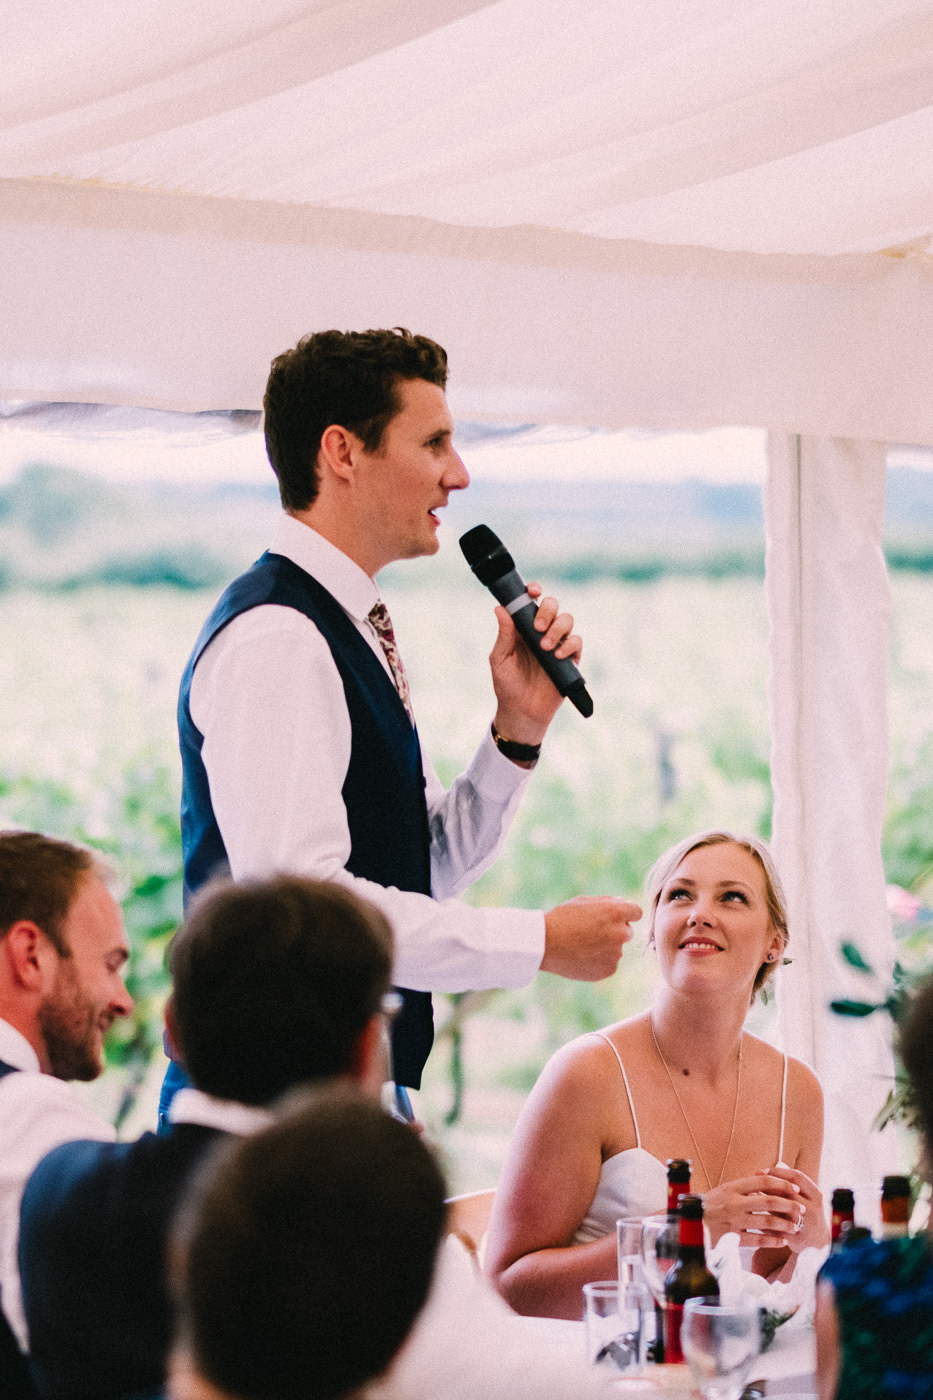 COWBRIDGE GLYNDWR VINEYARD WEDDING PHOTOGRAPHY CARDIFF SOUTH WALES 063